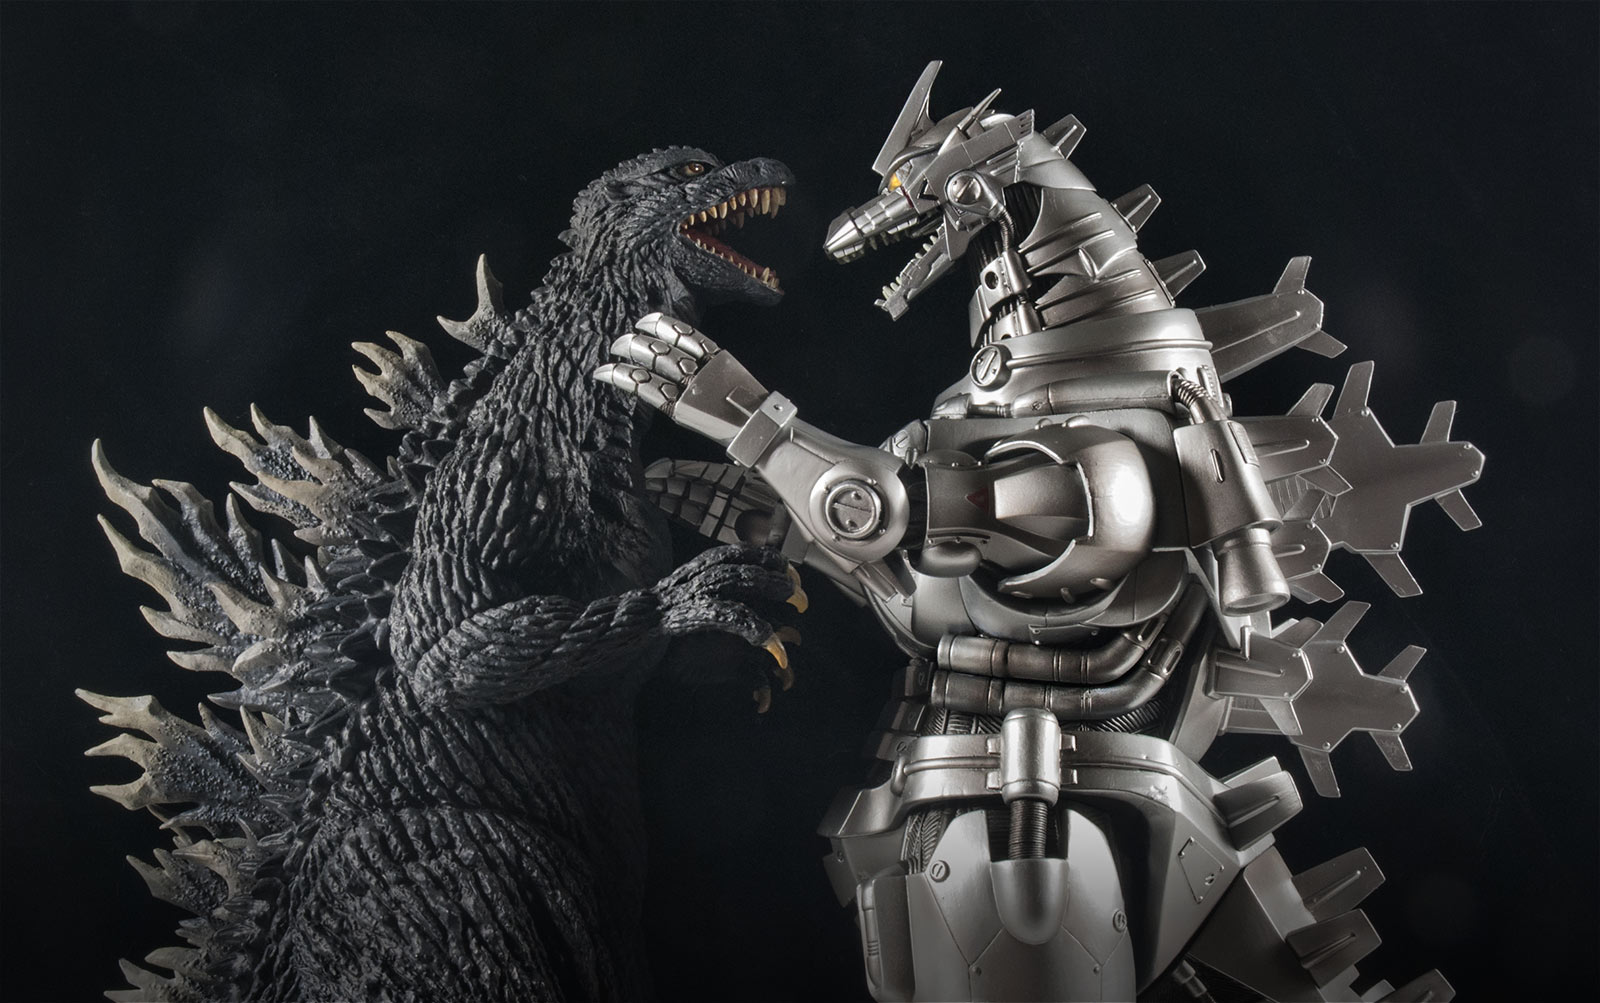 X Plus 30cm Godzilla 2003 Vinyl Figure Review Kaiju Addicts